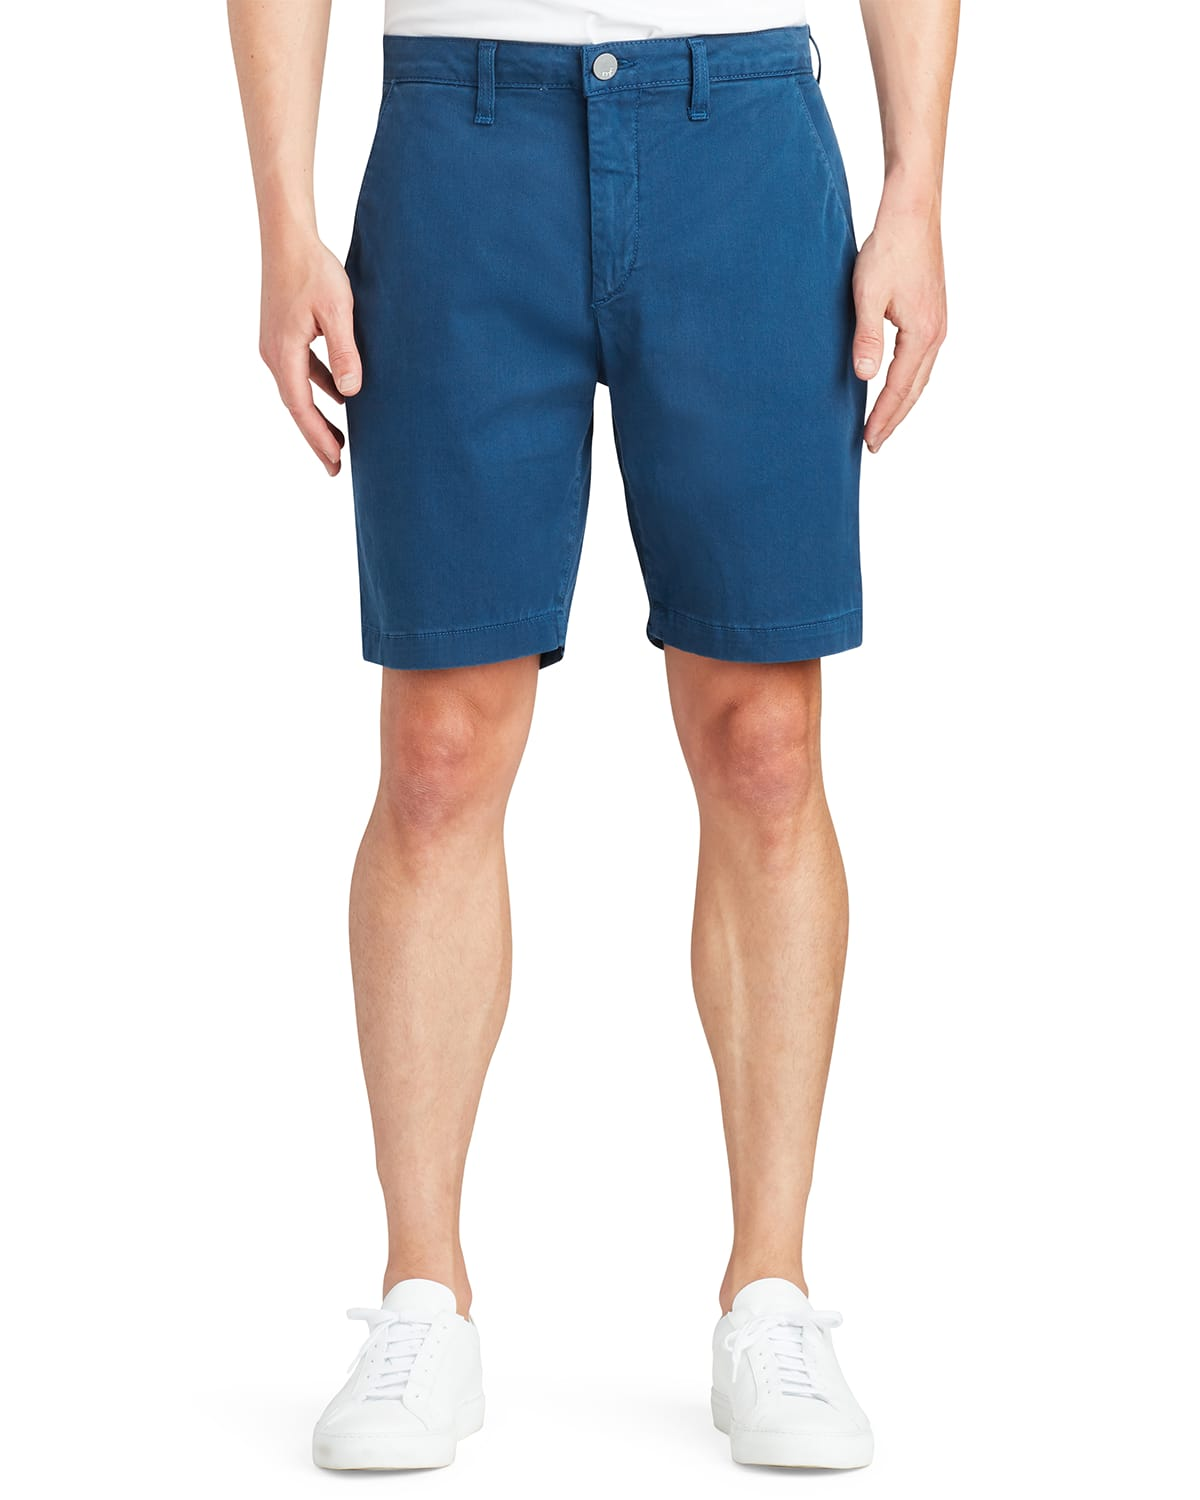 Men's Solid Cruise Shorts